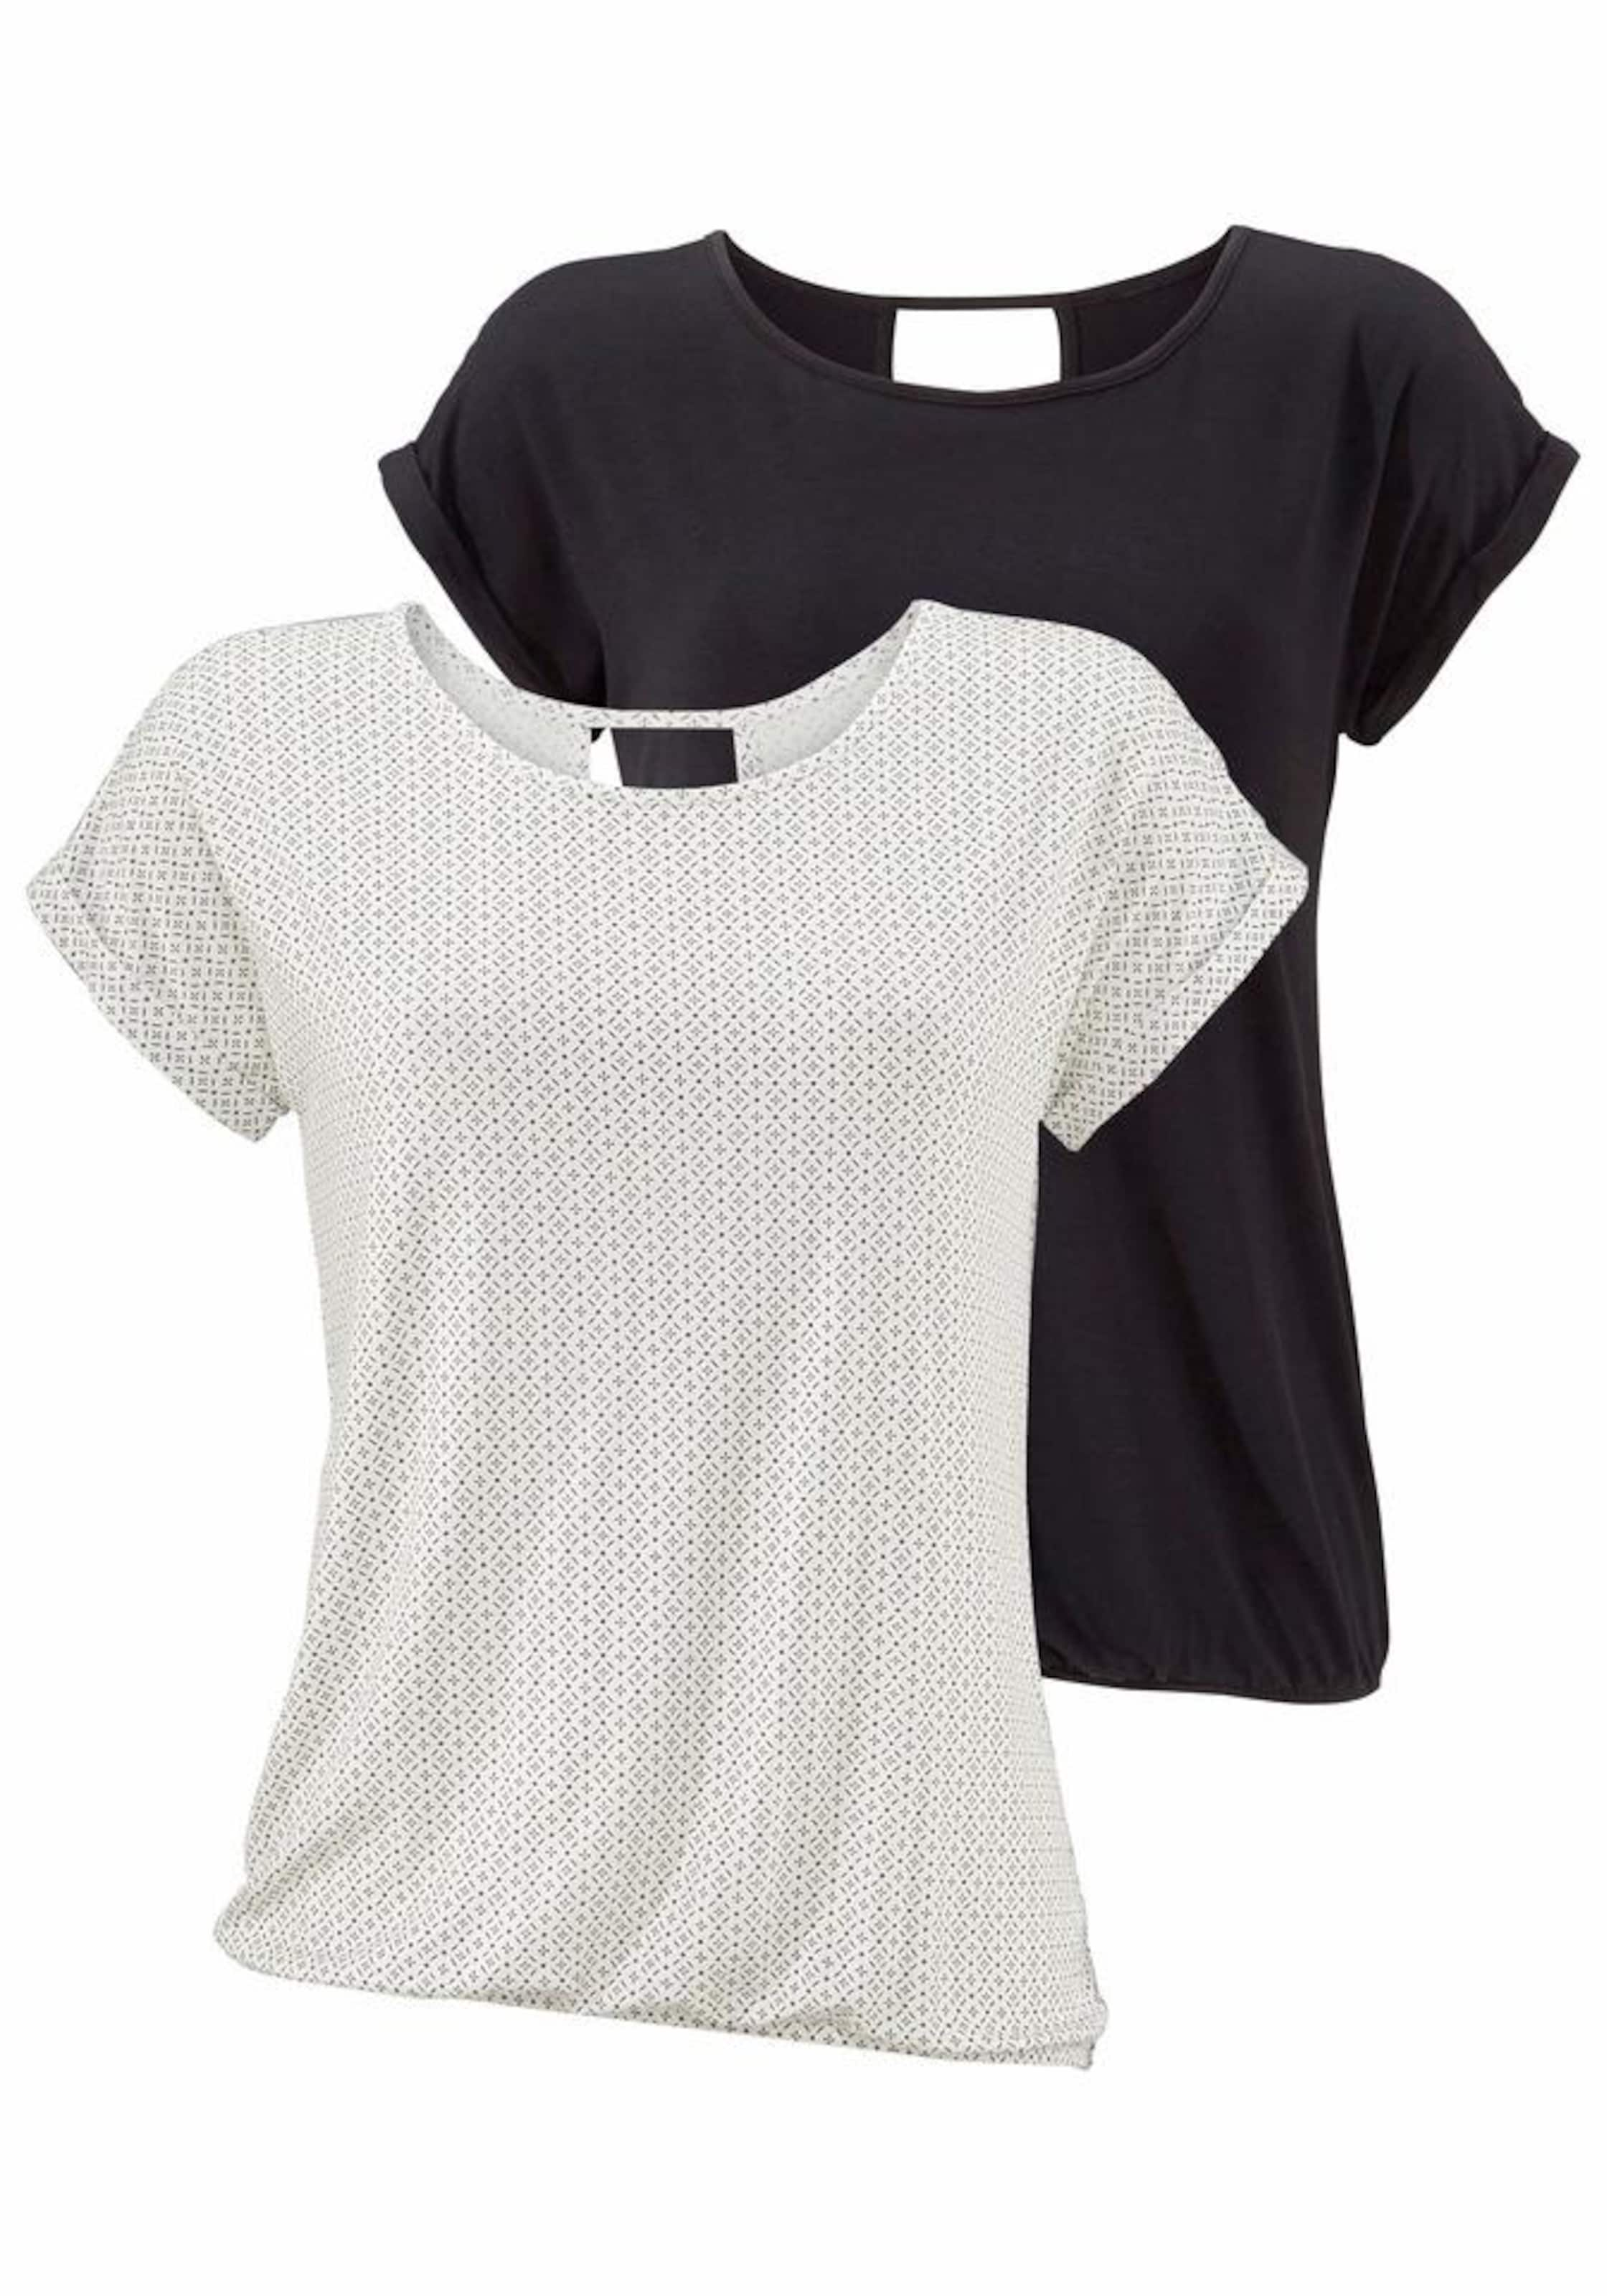 SchwarzOffwhite shirts Lascana Lascana T In T In shirts sCtohQxBrd